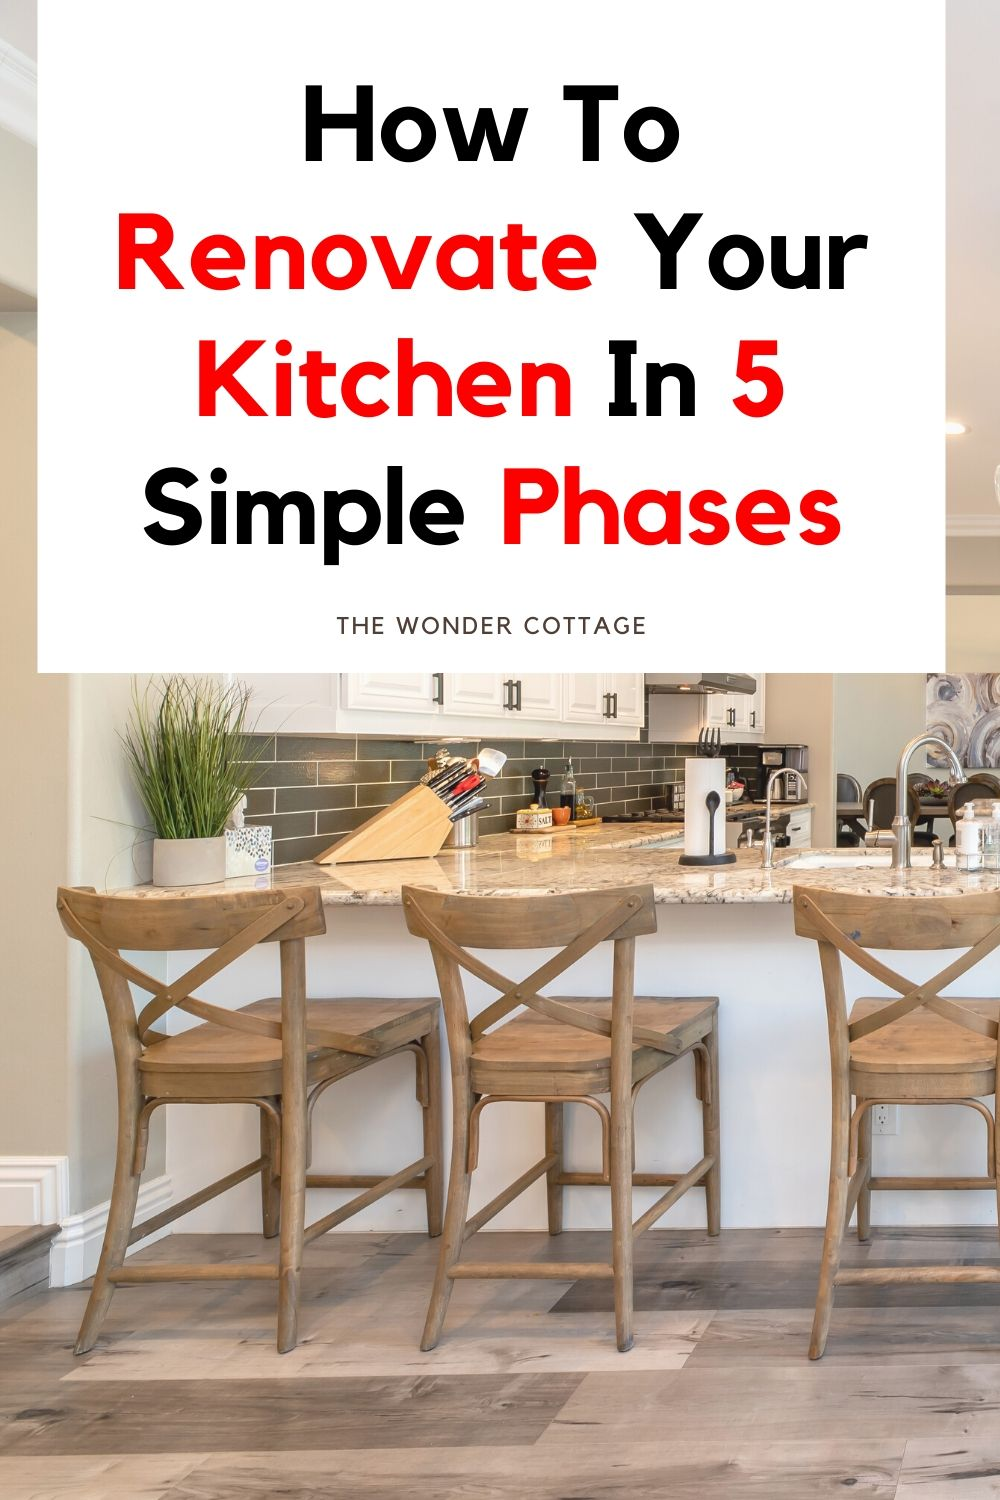 How to renovate your kitchen in 5 simple phases